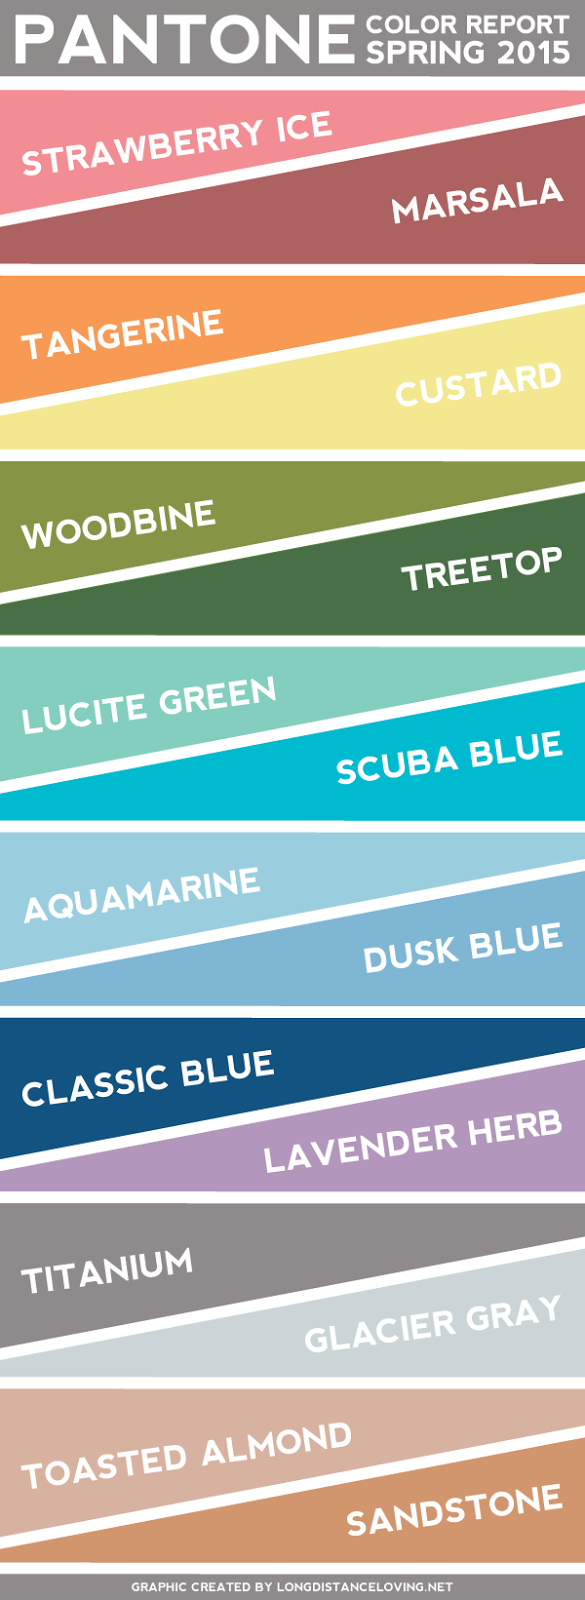 pantone spring 2015 fashion color report my smart shirt